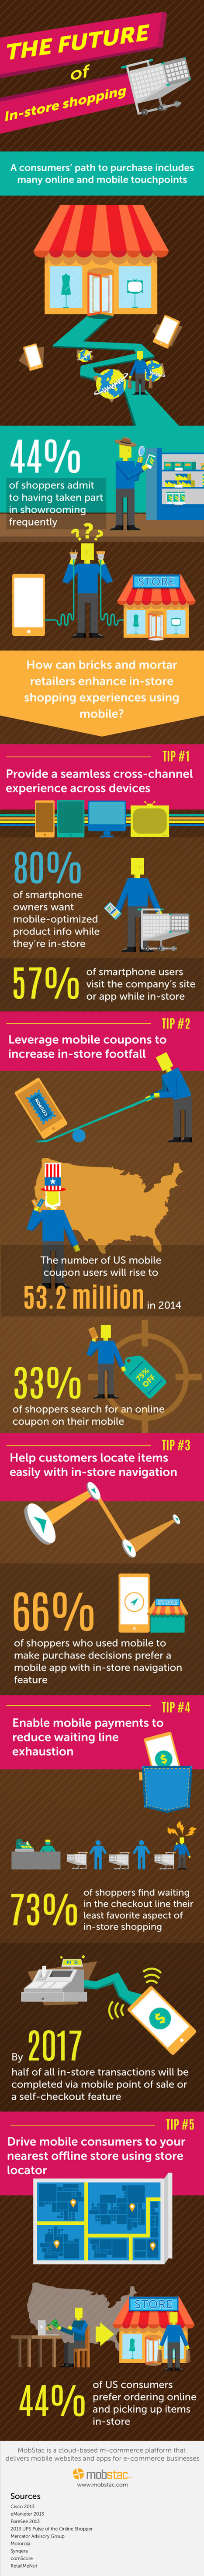 Mobile Phones Are Changing Retail. Here's How. #Infographic | MarketingHits | Scoop.it